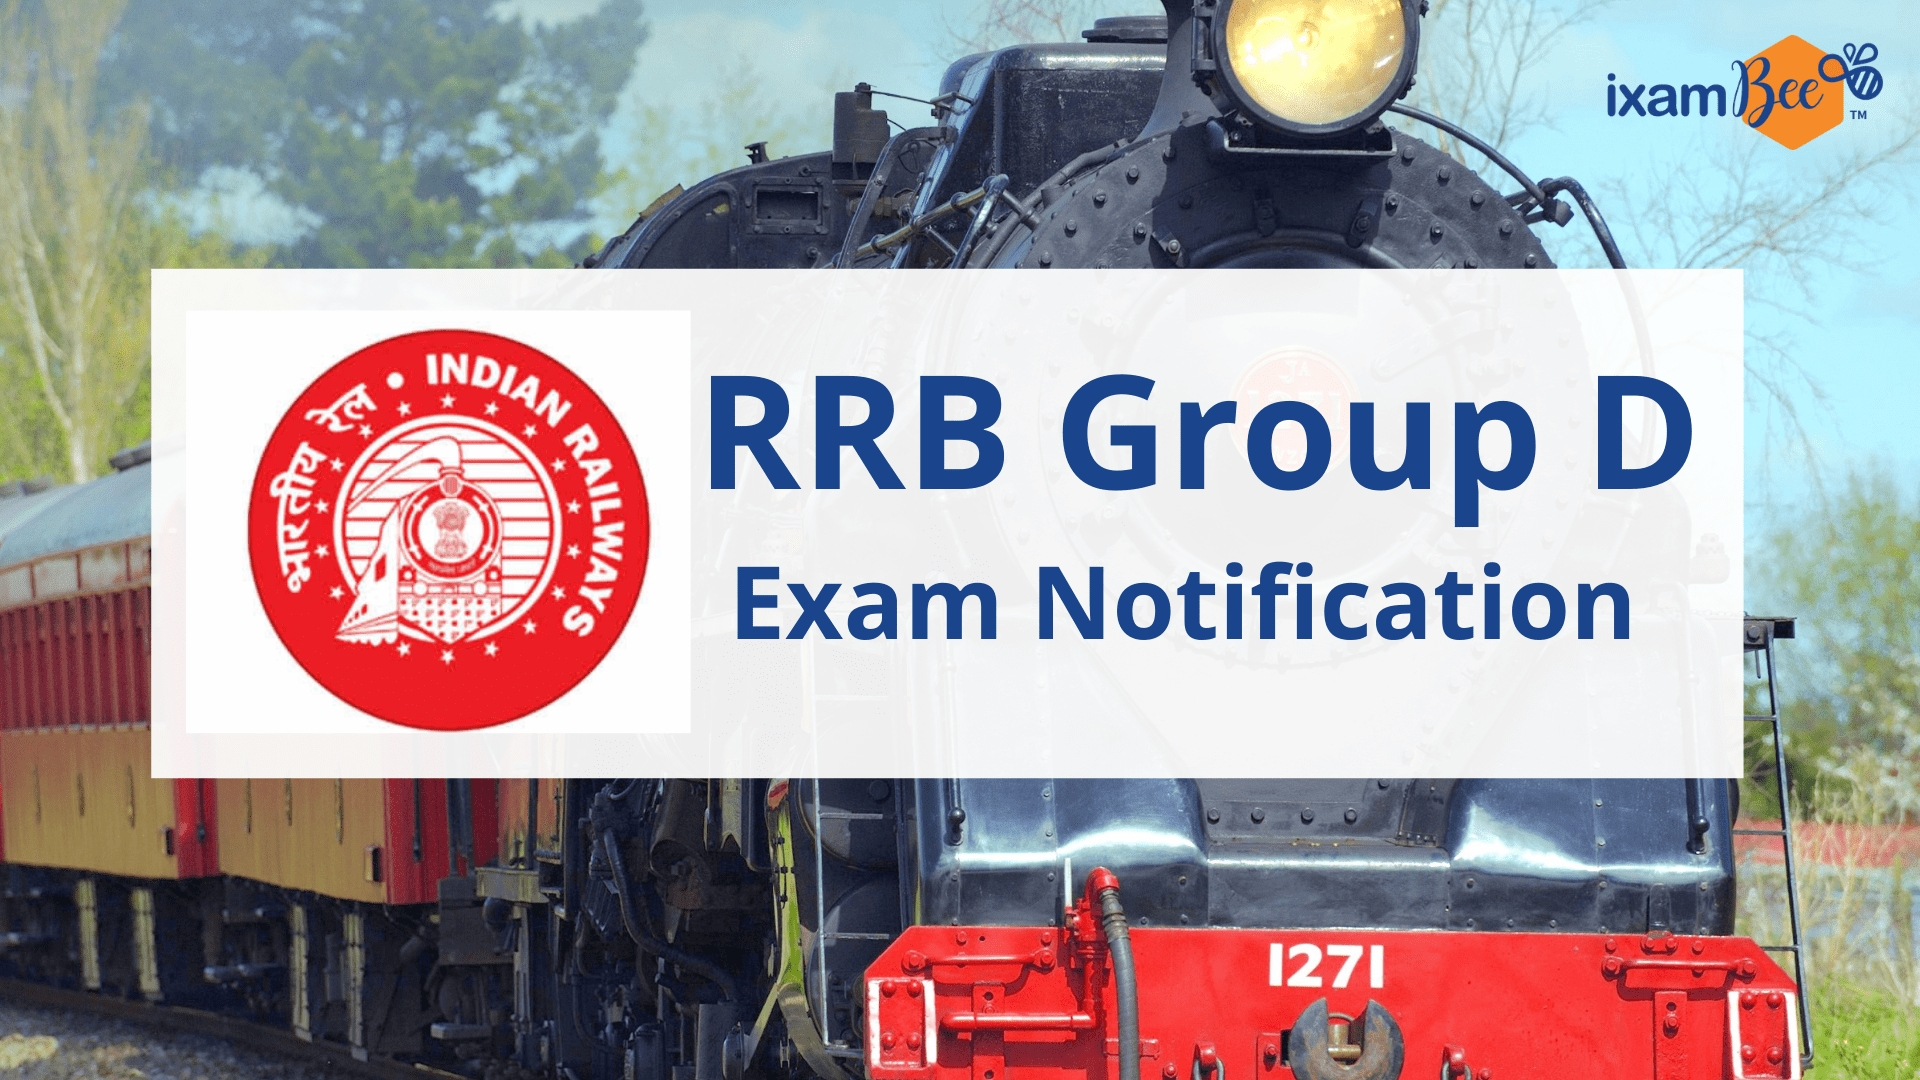 RRB Group D Exam Notification